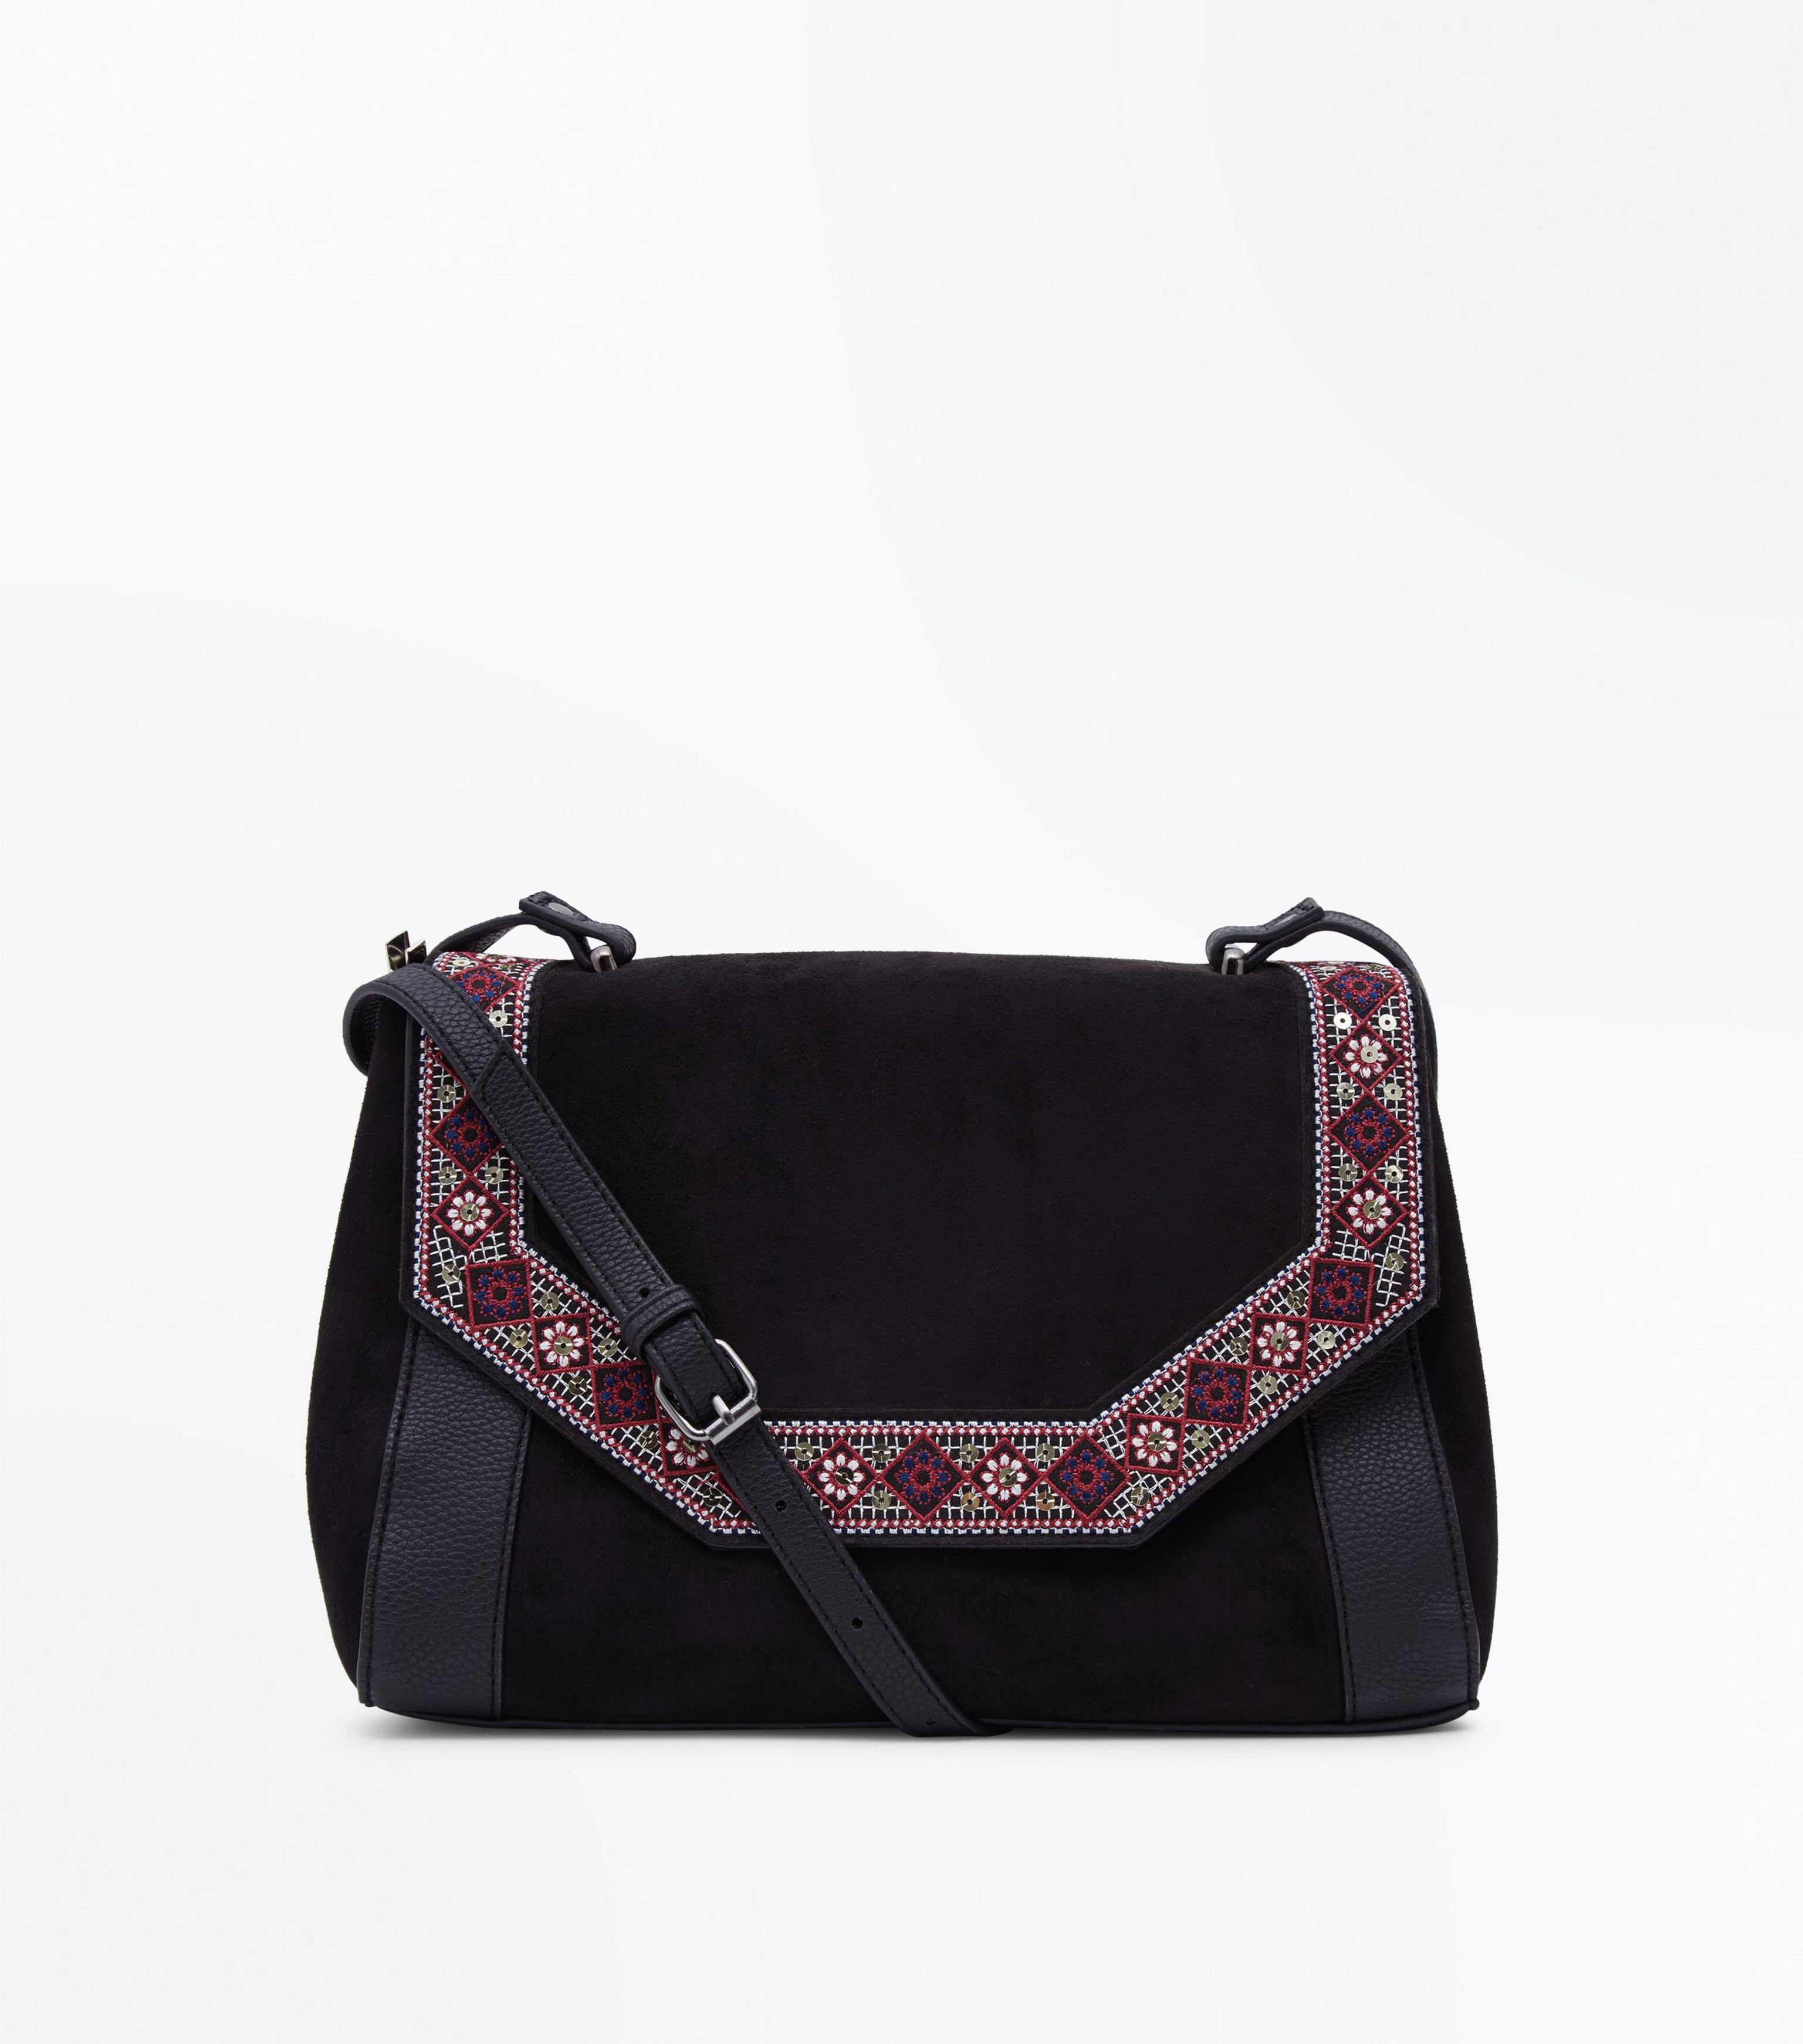 outlet store good reputation multiple colors New Look Leather Black Geometric Embroidered Cross Body Bag ...